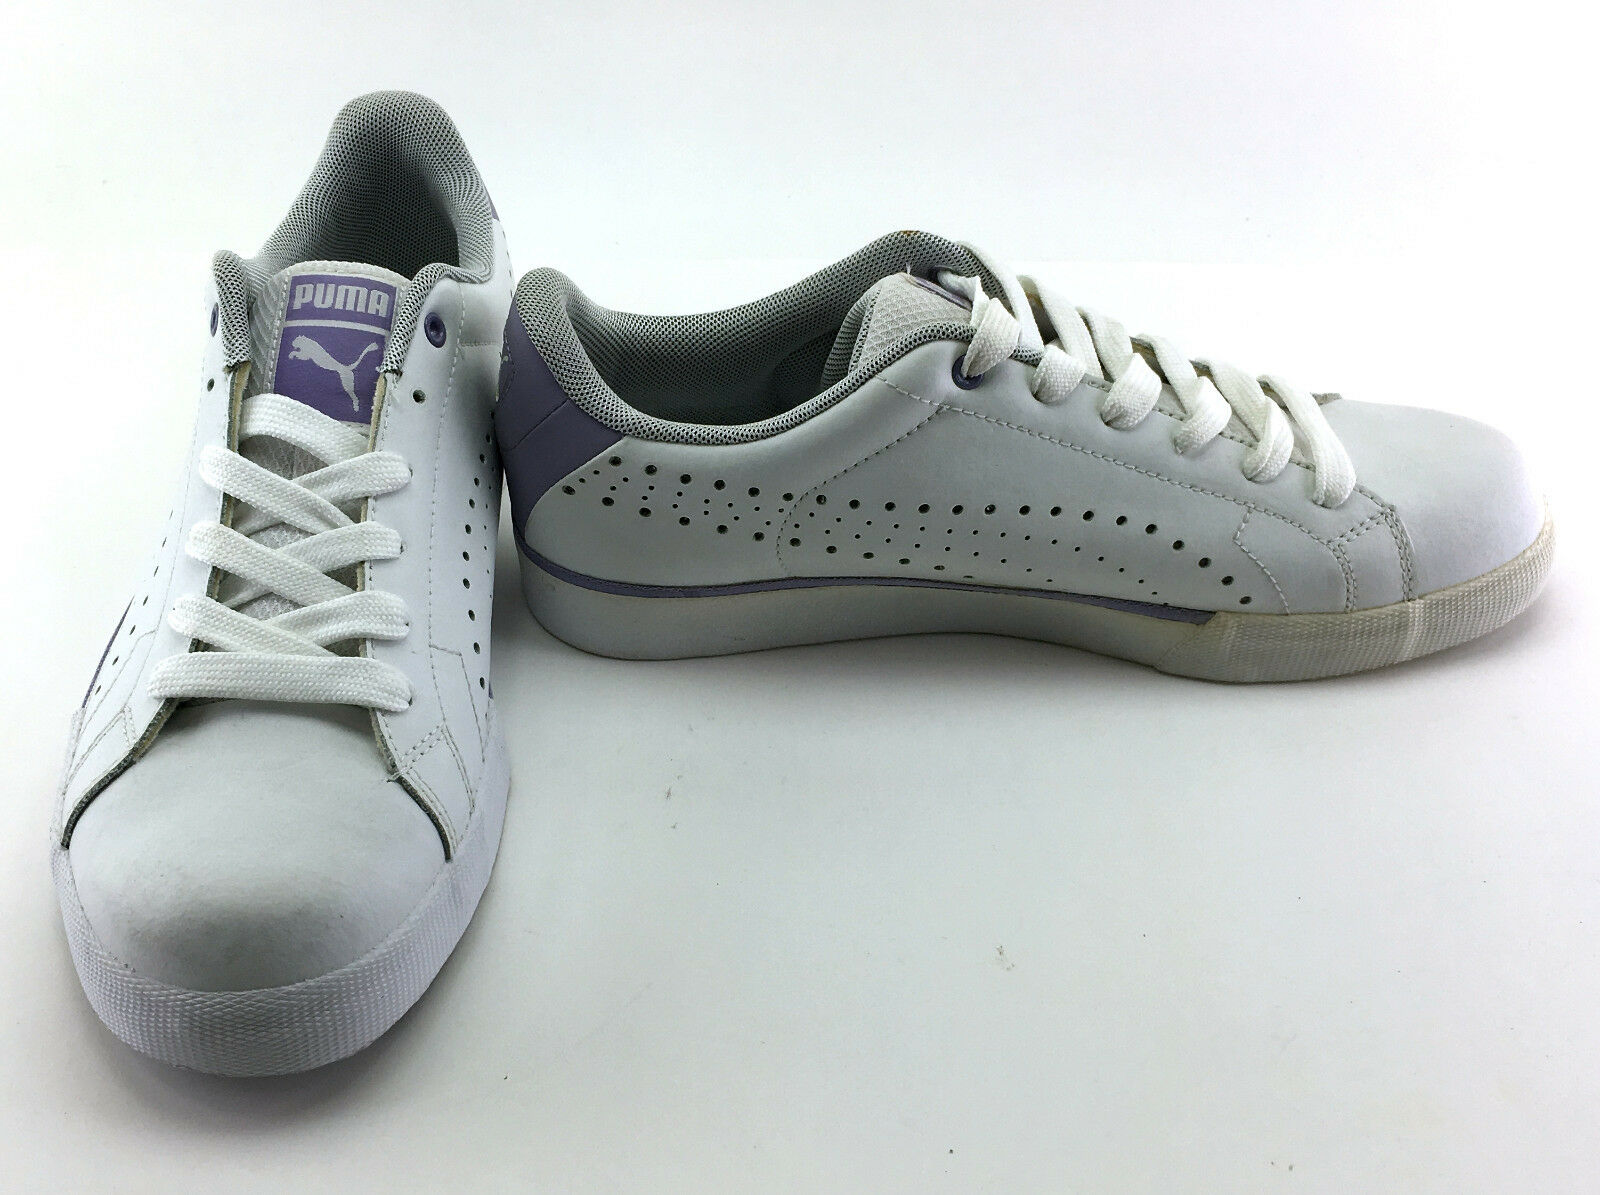 Puma shoes Game Point White Purple Sneakers Size 9.5